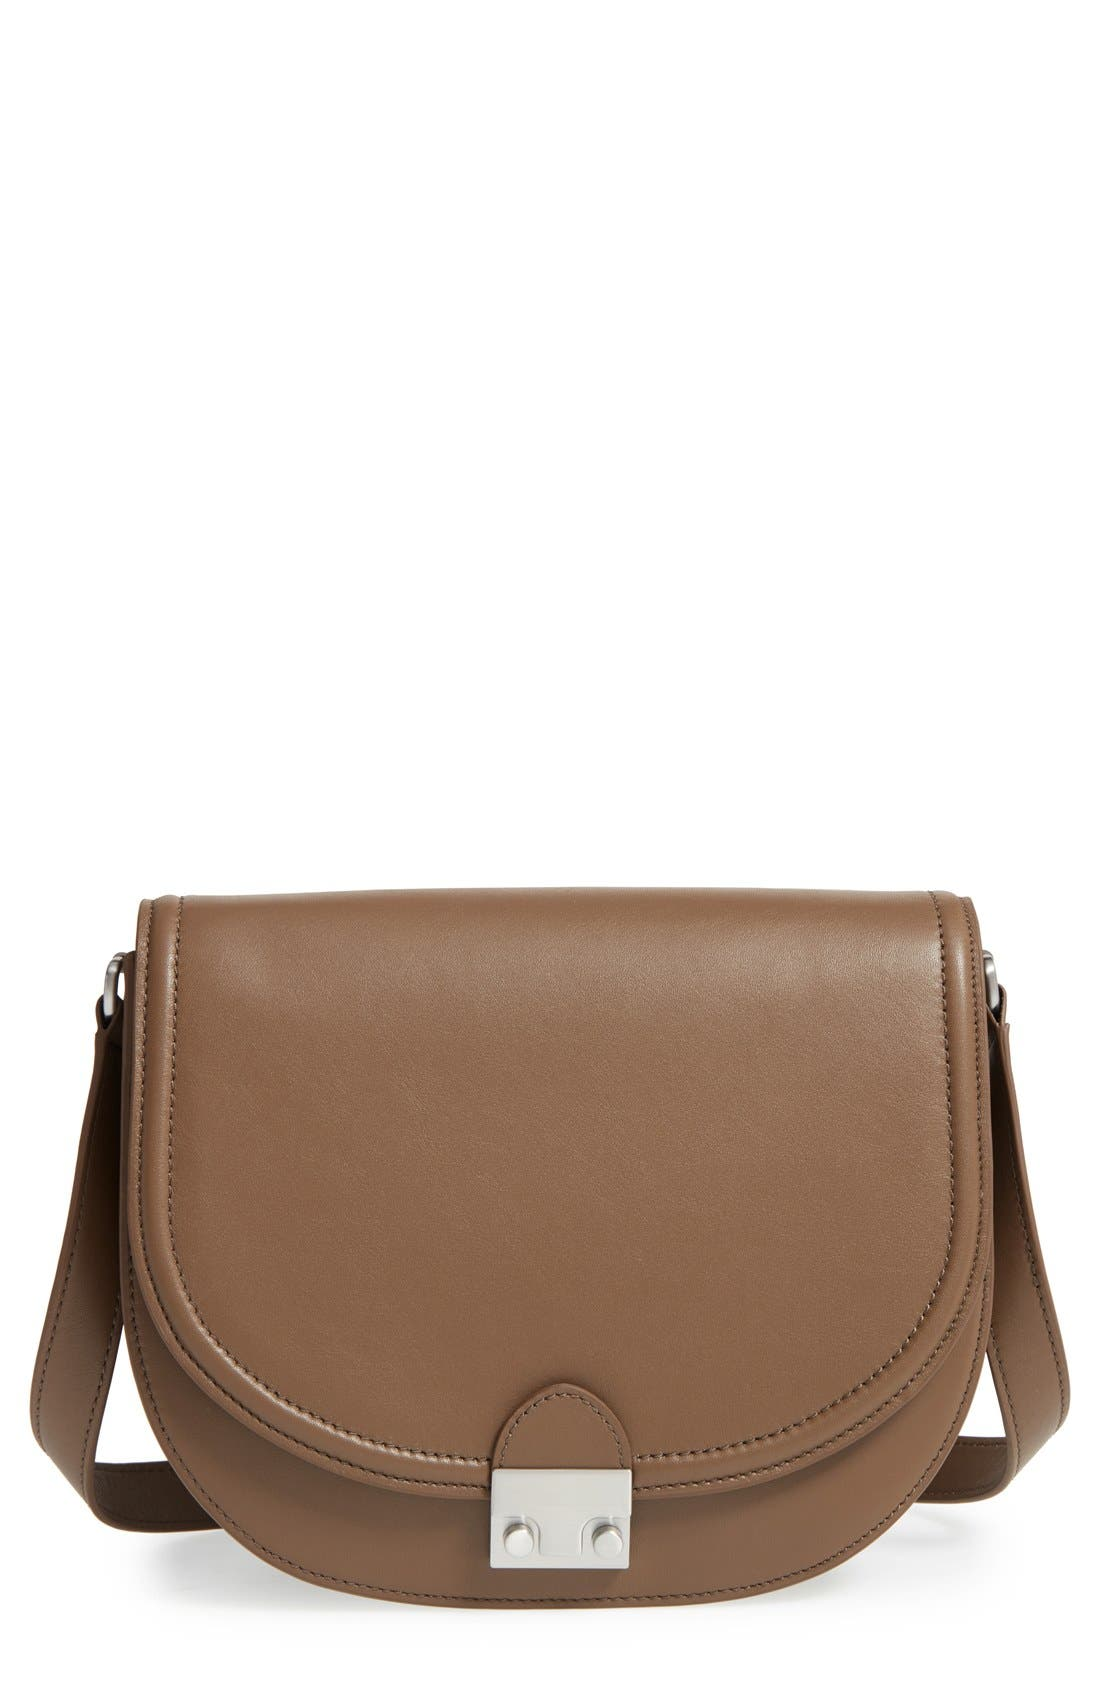 Alternate Image 1 Selected - Loeffler Randall 'Large' Leather Saddle Bag